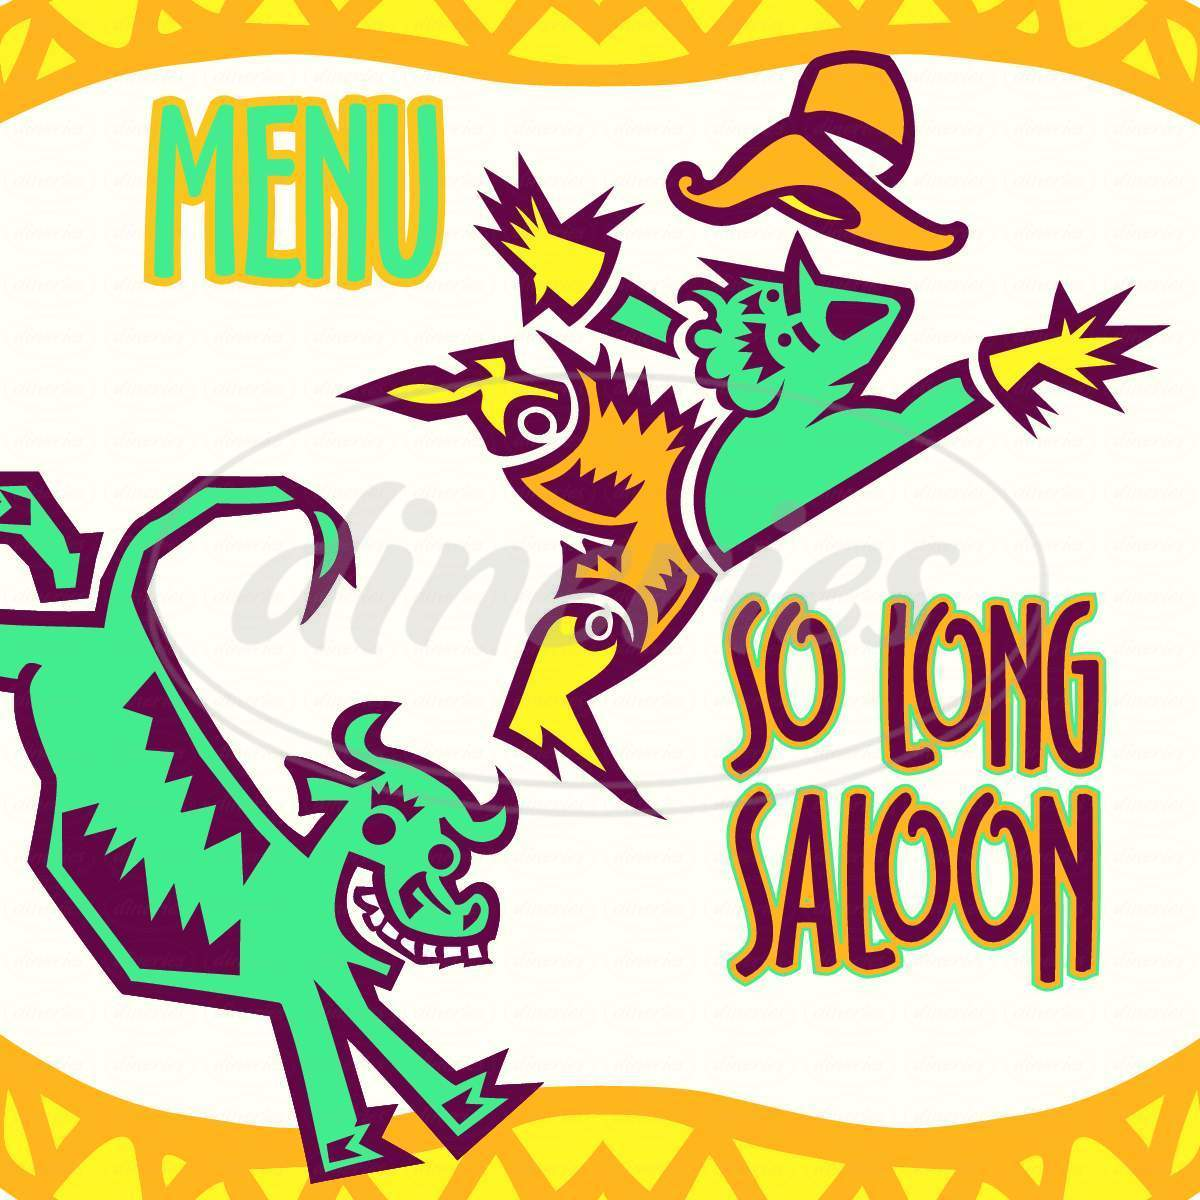 menu for So Long Saloon